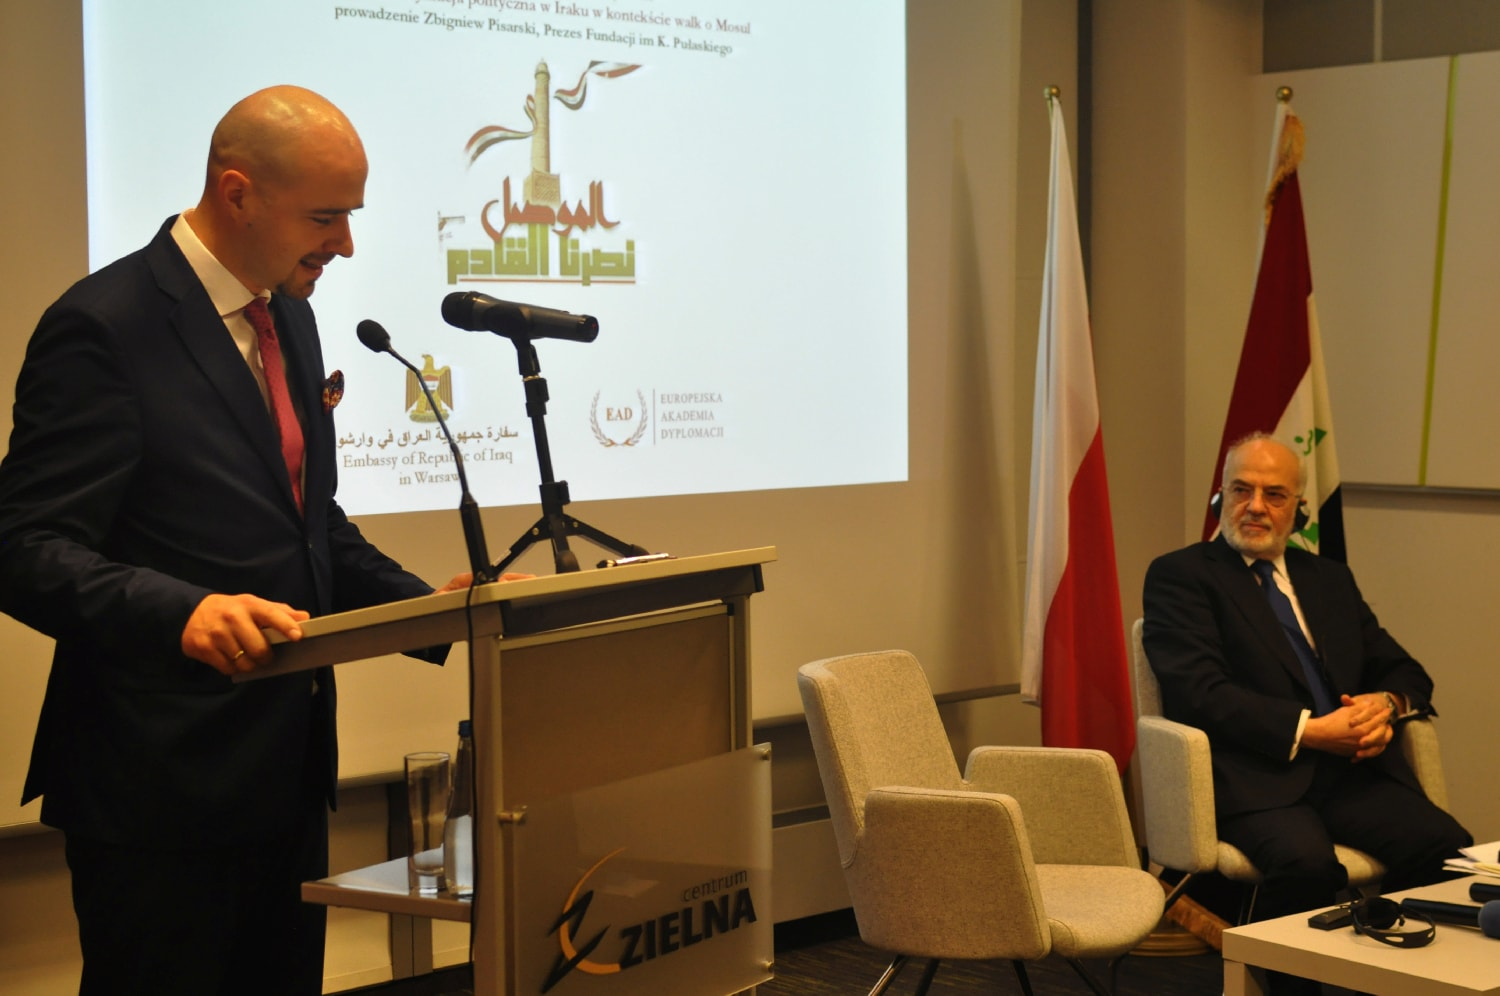 Minister of Foreign Affairs of the Republic of Iraq in Poland: 'Iraq needs foreign investments. I do consider this as good opportunity for Poland'.